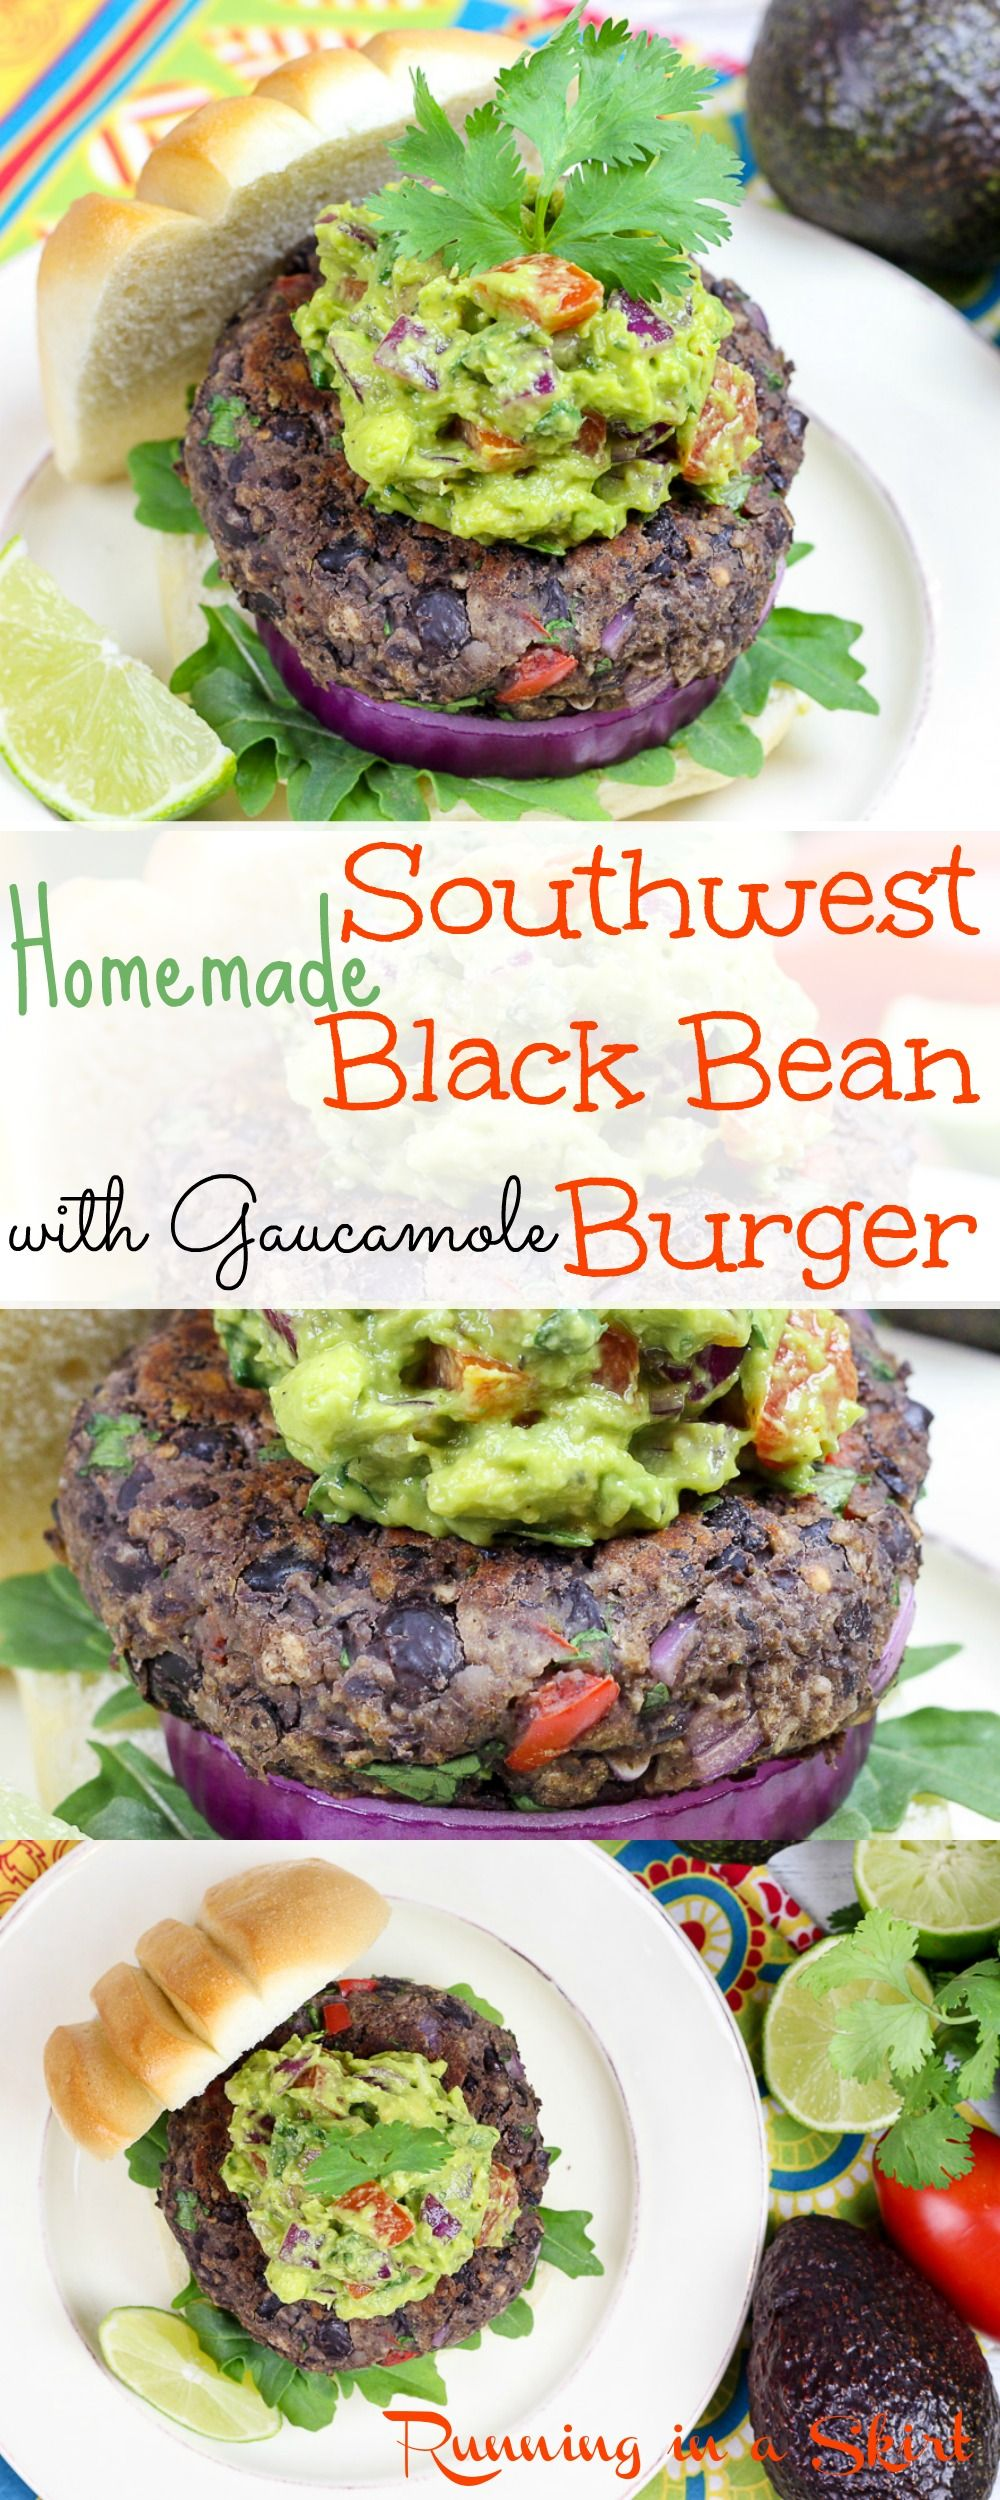 Easy & Healthy Homemade Southwest Black Bean Burgers with guacamole.  A vegetarian grilling option anyone will love.  These are